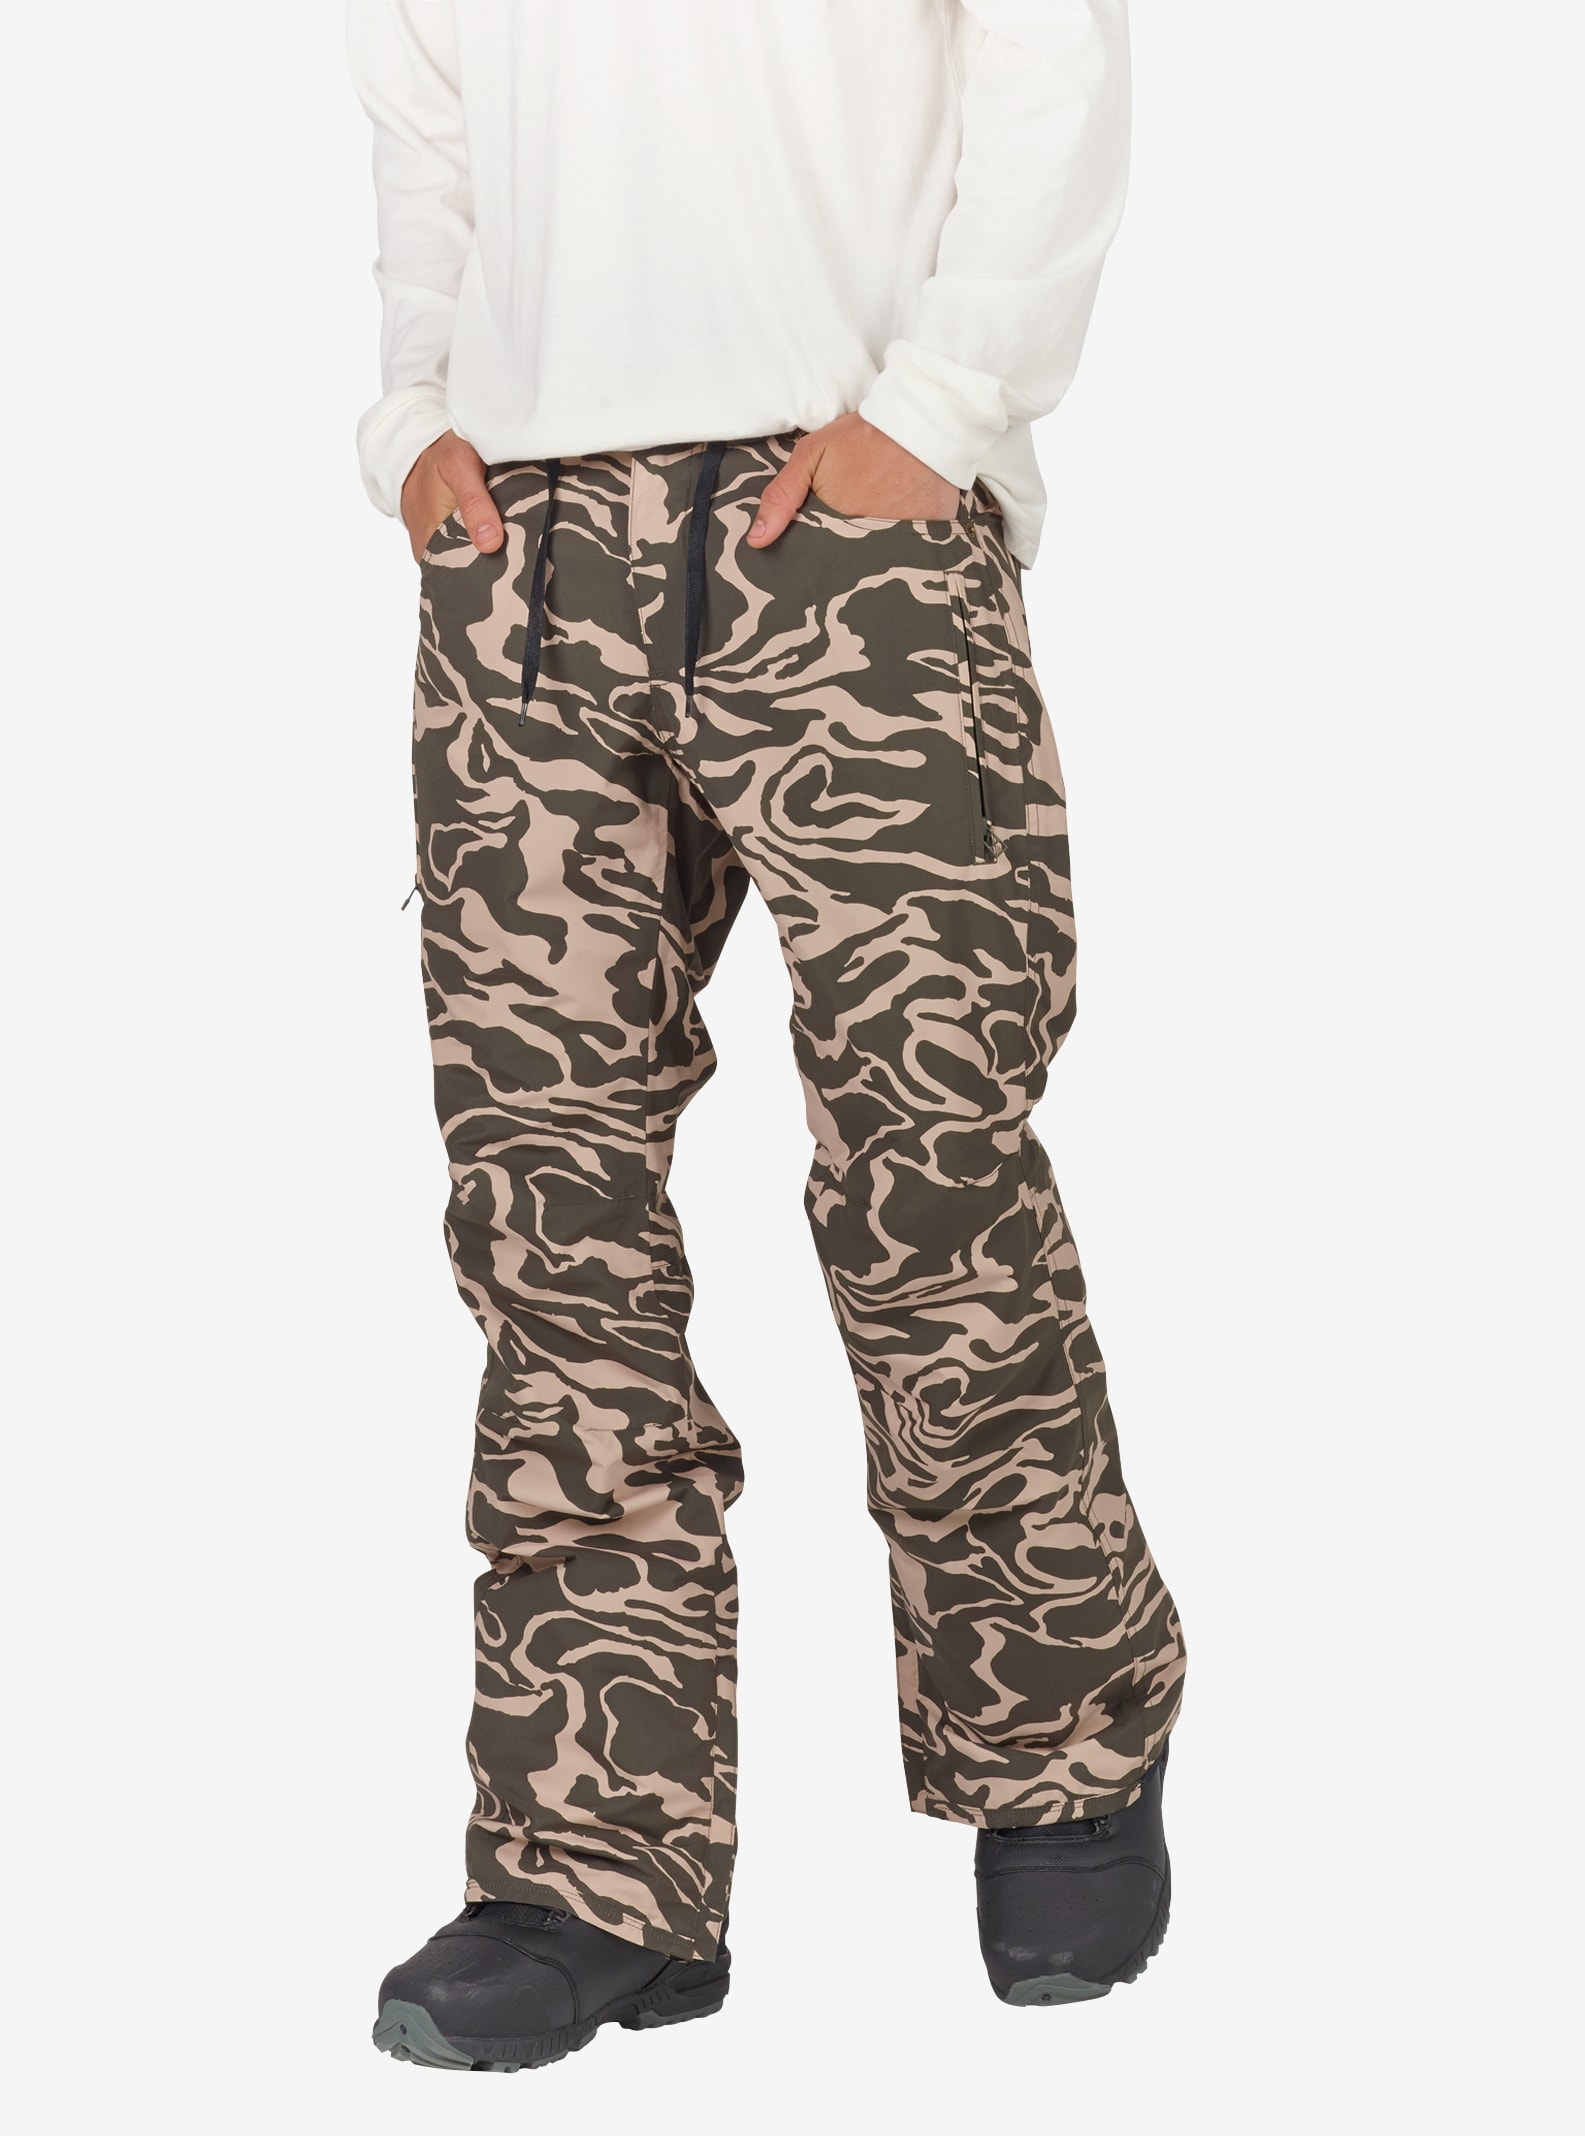 Men's Analog Thatcher Slim Pant shown in Forest Noodle Camo